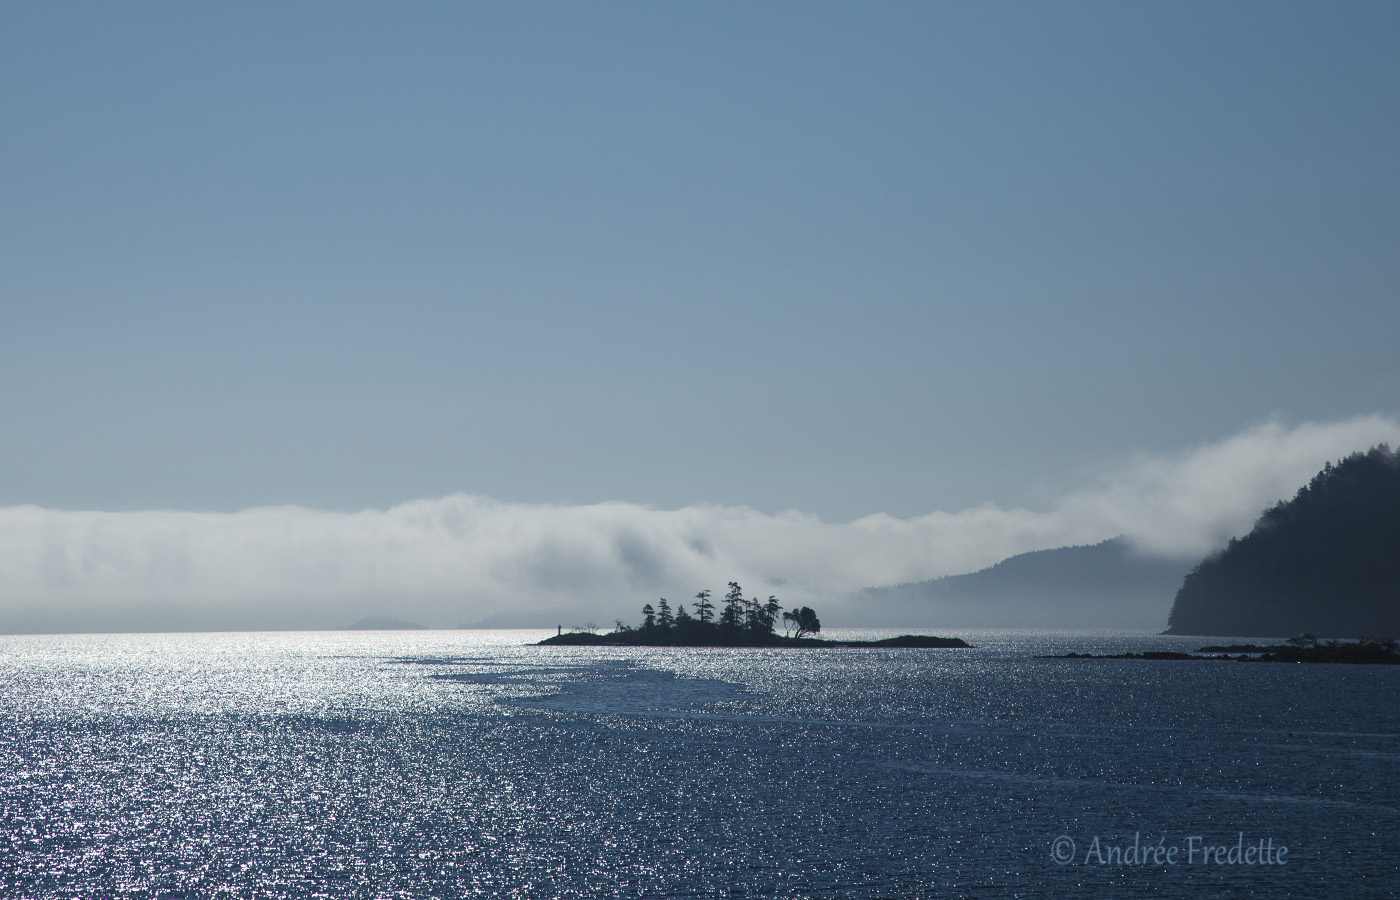 Islet with approaching fog. Photo by Andrée Fredette